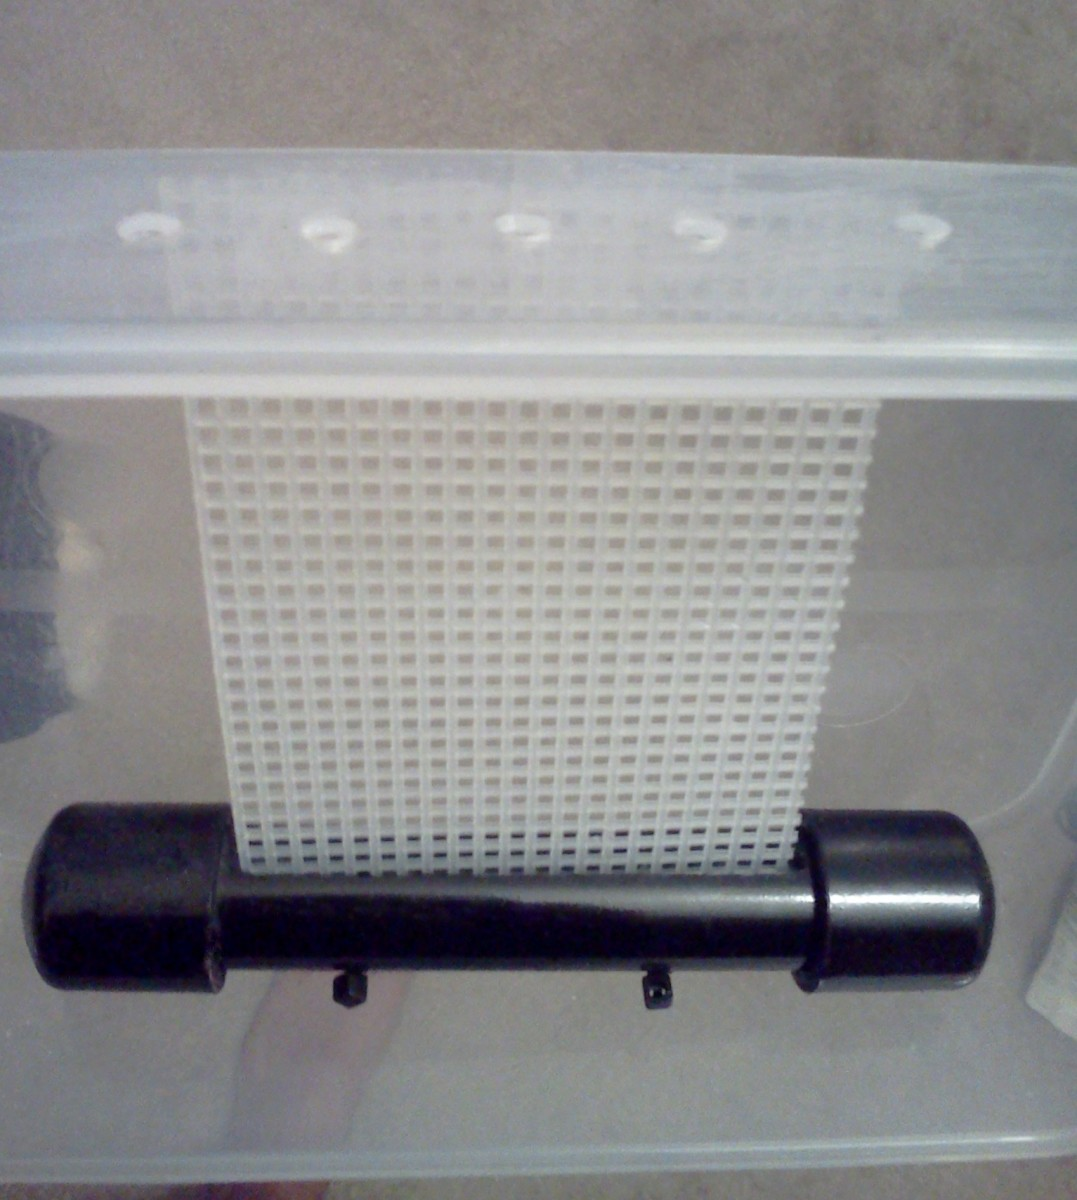 I drilled air holes in the top of scrubber (I also drilled 2 holes in the bottom so the 2 plastic tubes on the bottom of the PVC screen holder could fit snug)